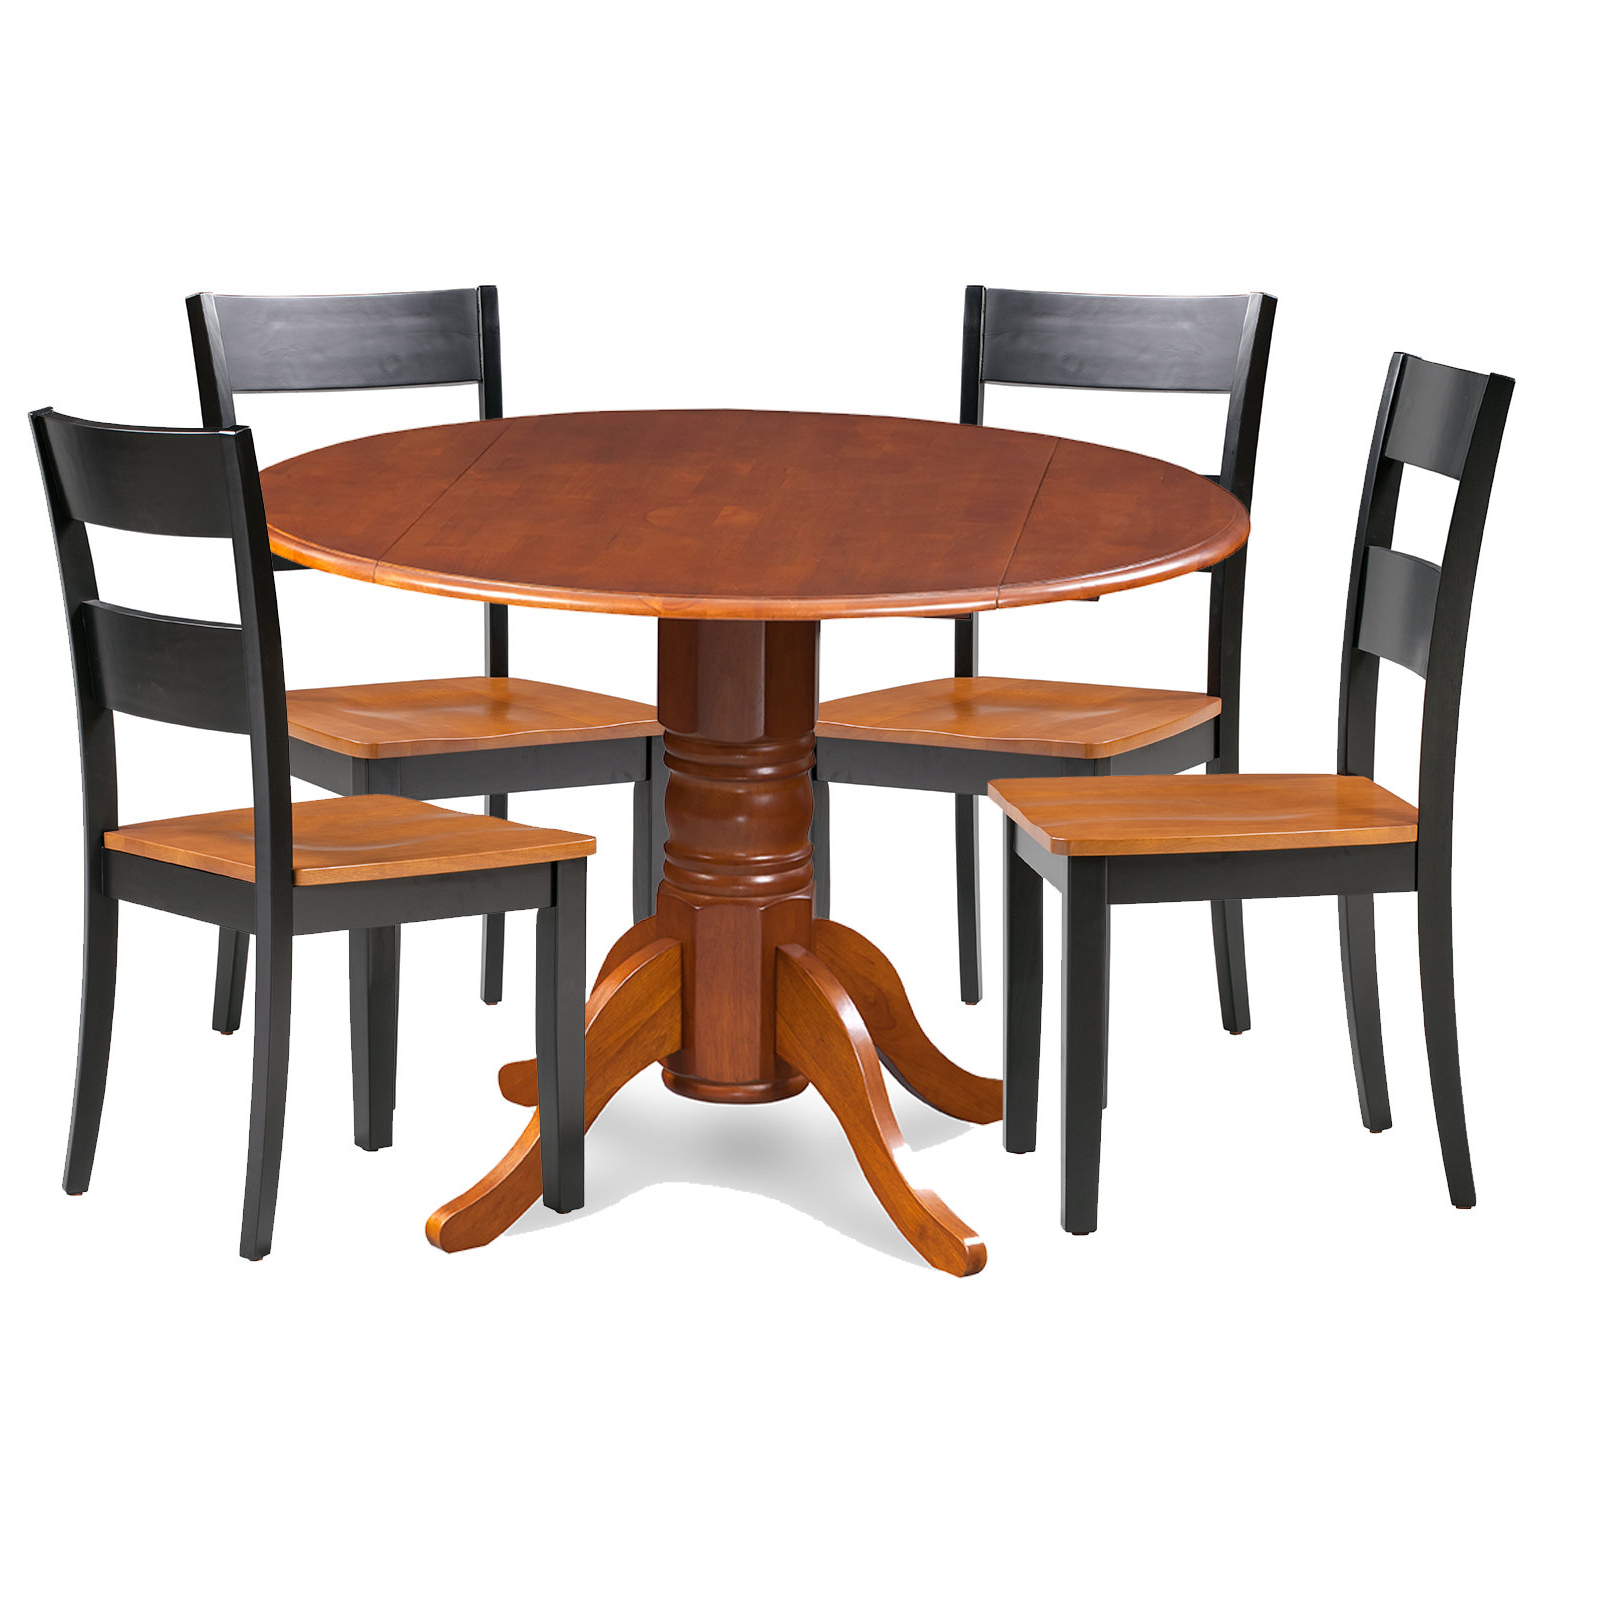 Emmeline 5 Piece Breakfast Nook Dining Sets Intended For Preferred Charlton Home Cordell 5 Piece Drop Leaf Breakfast Nook Solid Wood Dining Set (View 7 of 20)